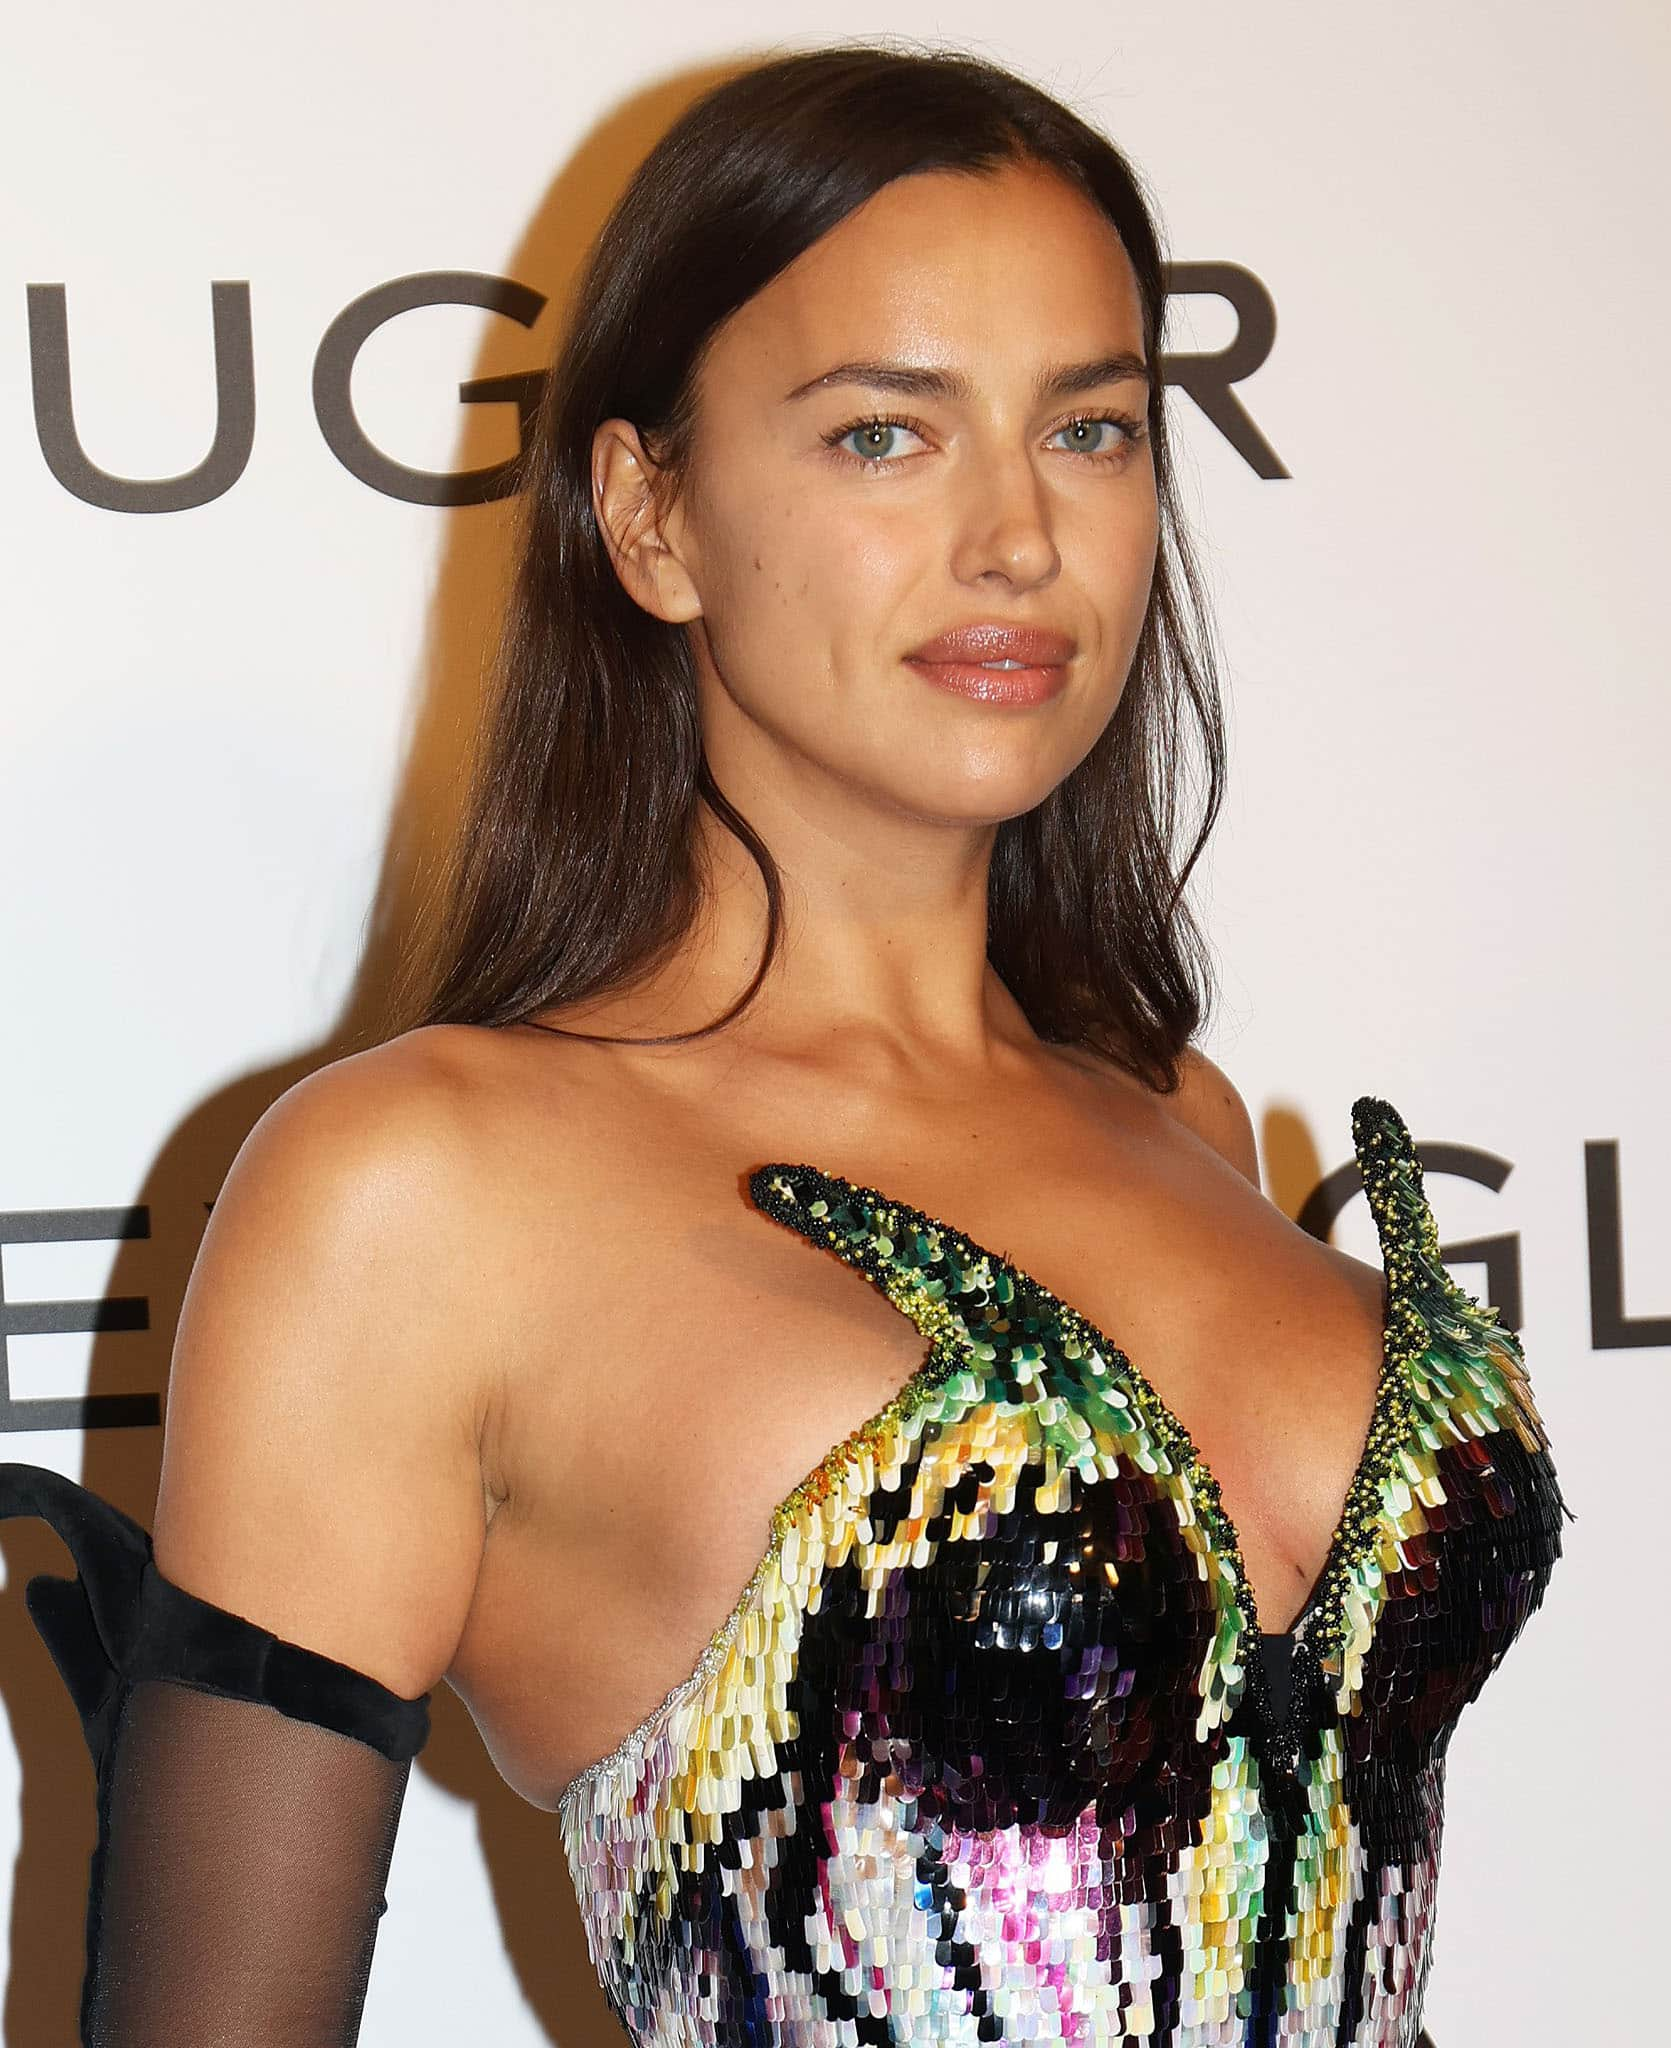 Irina Shayk simply wears her hair down with minimal makeup to allow her sequined dress to take center stage